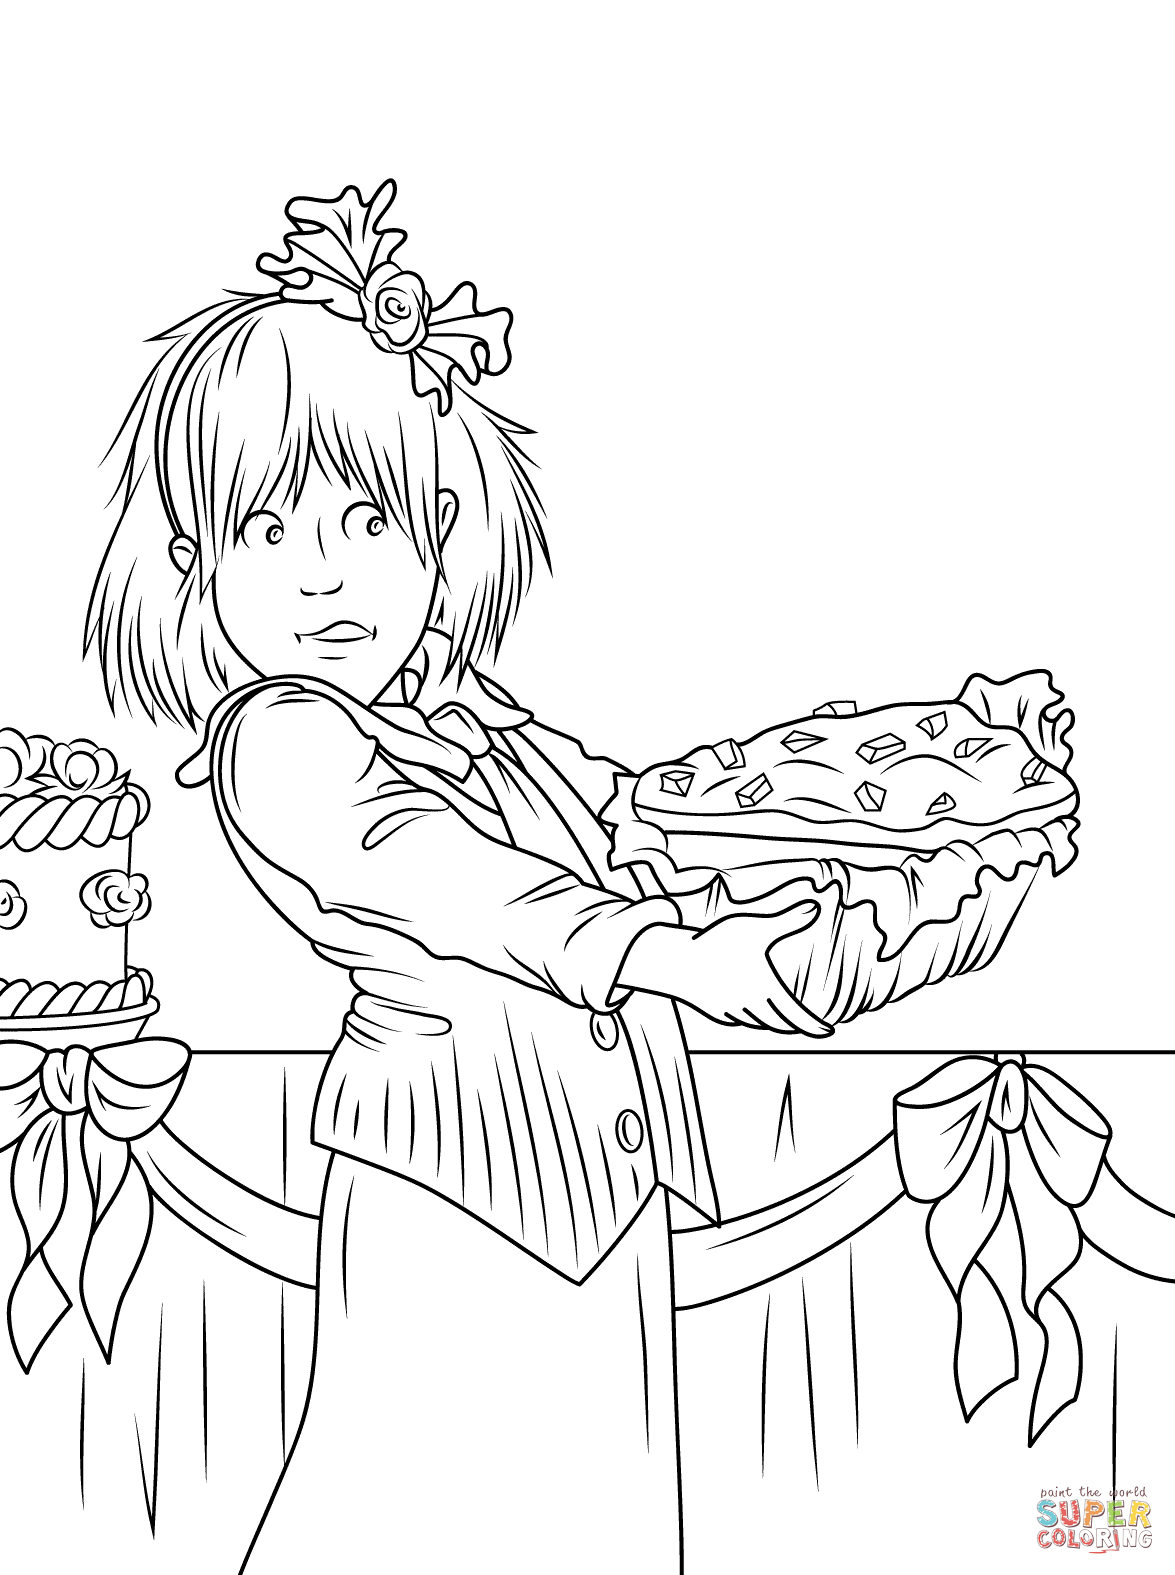 Junie B Jones Coloring Page Coloring Home